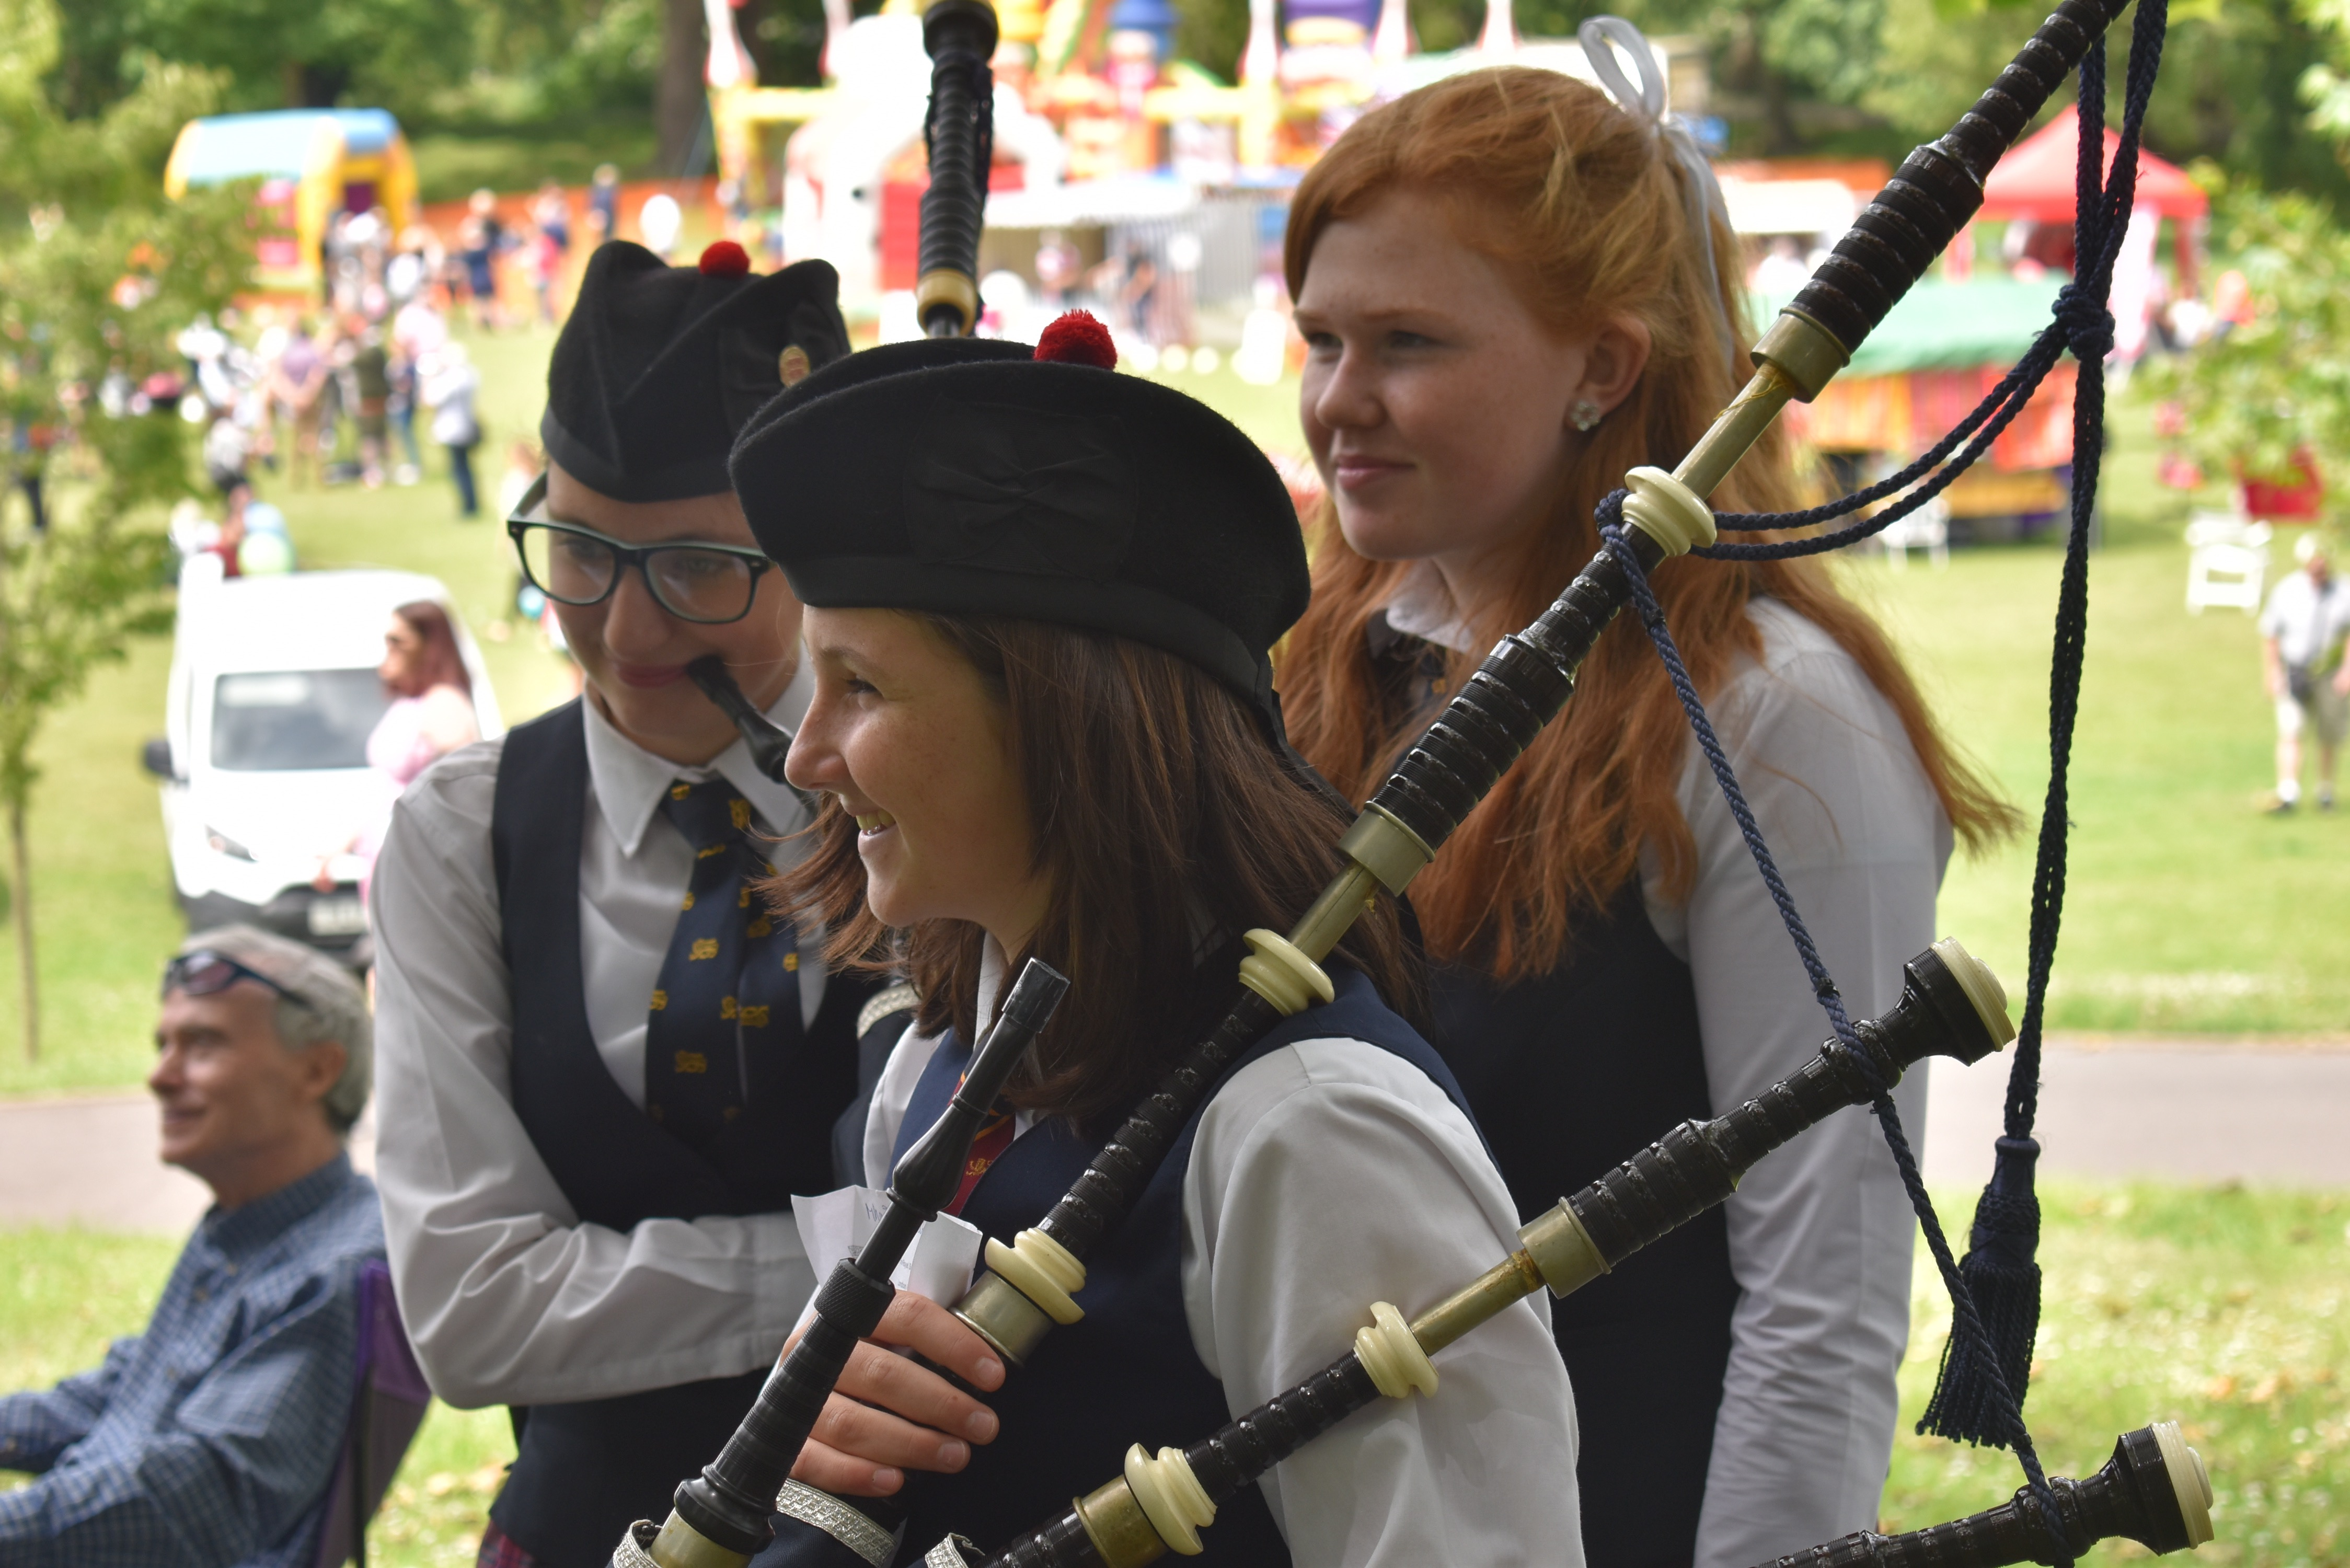 Buckswood bags a brace of firsts at Pipes in the Park